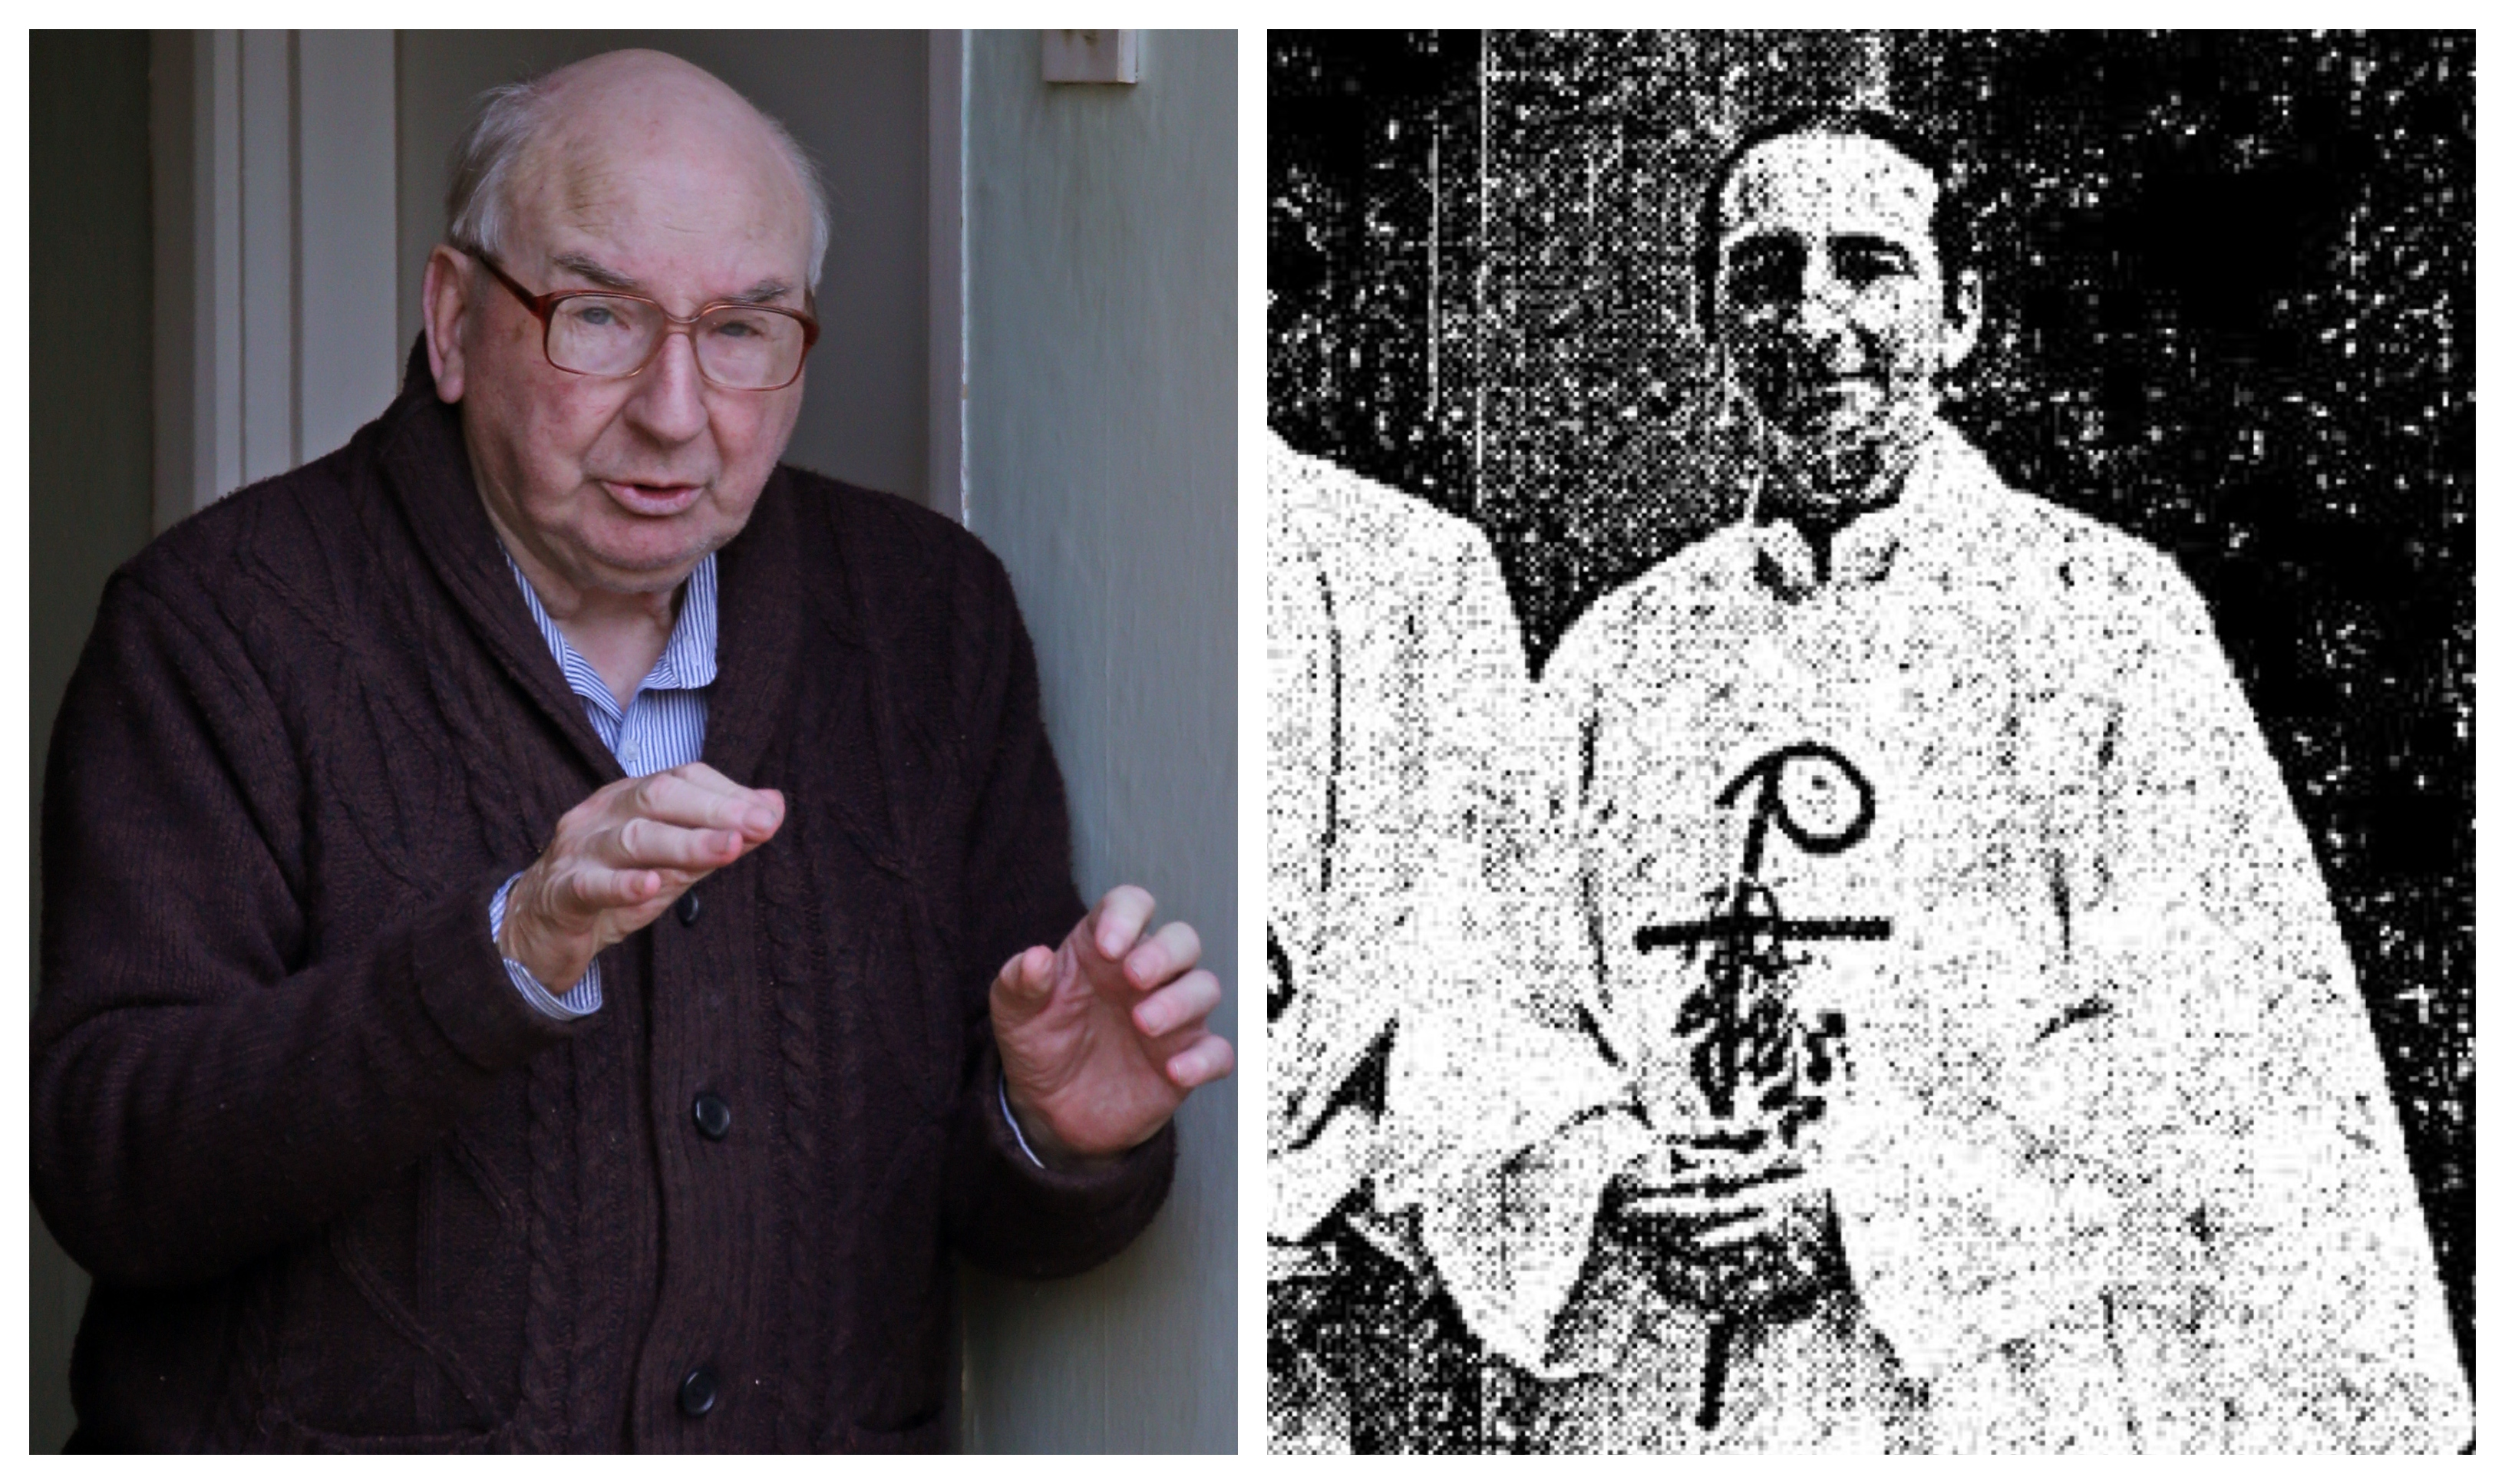 Father Joseph Dunne, now living in Ireland (left) was ordained in 1975 (right)